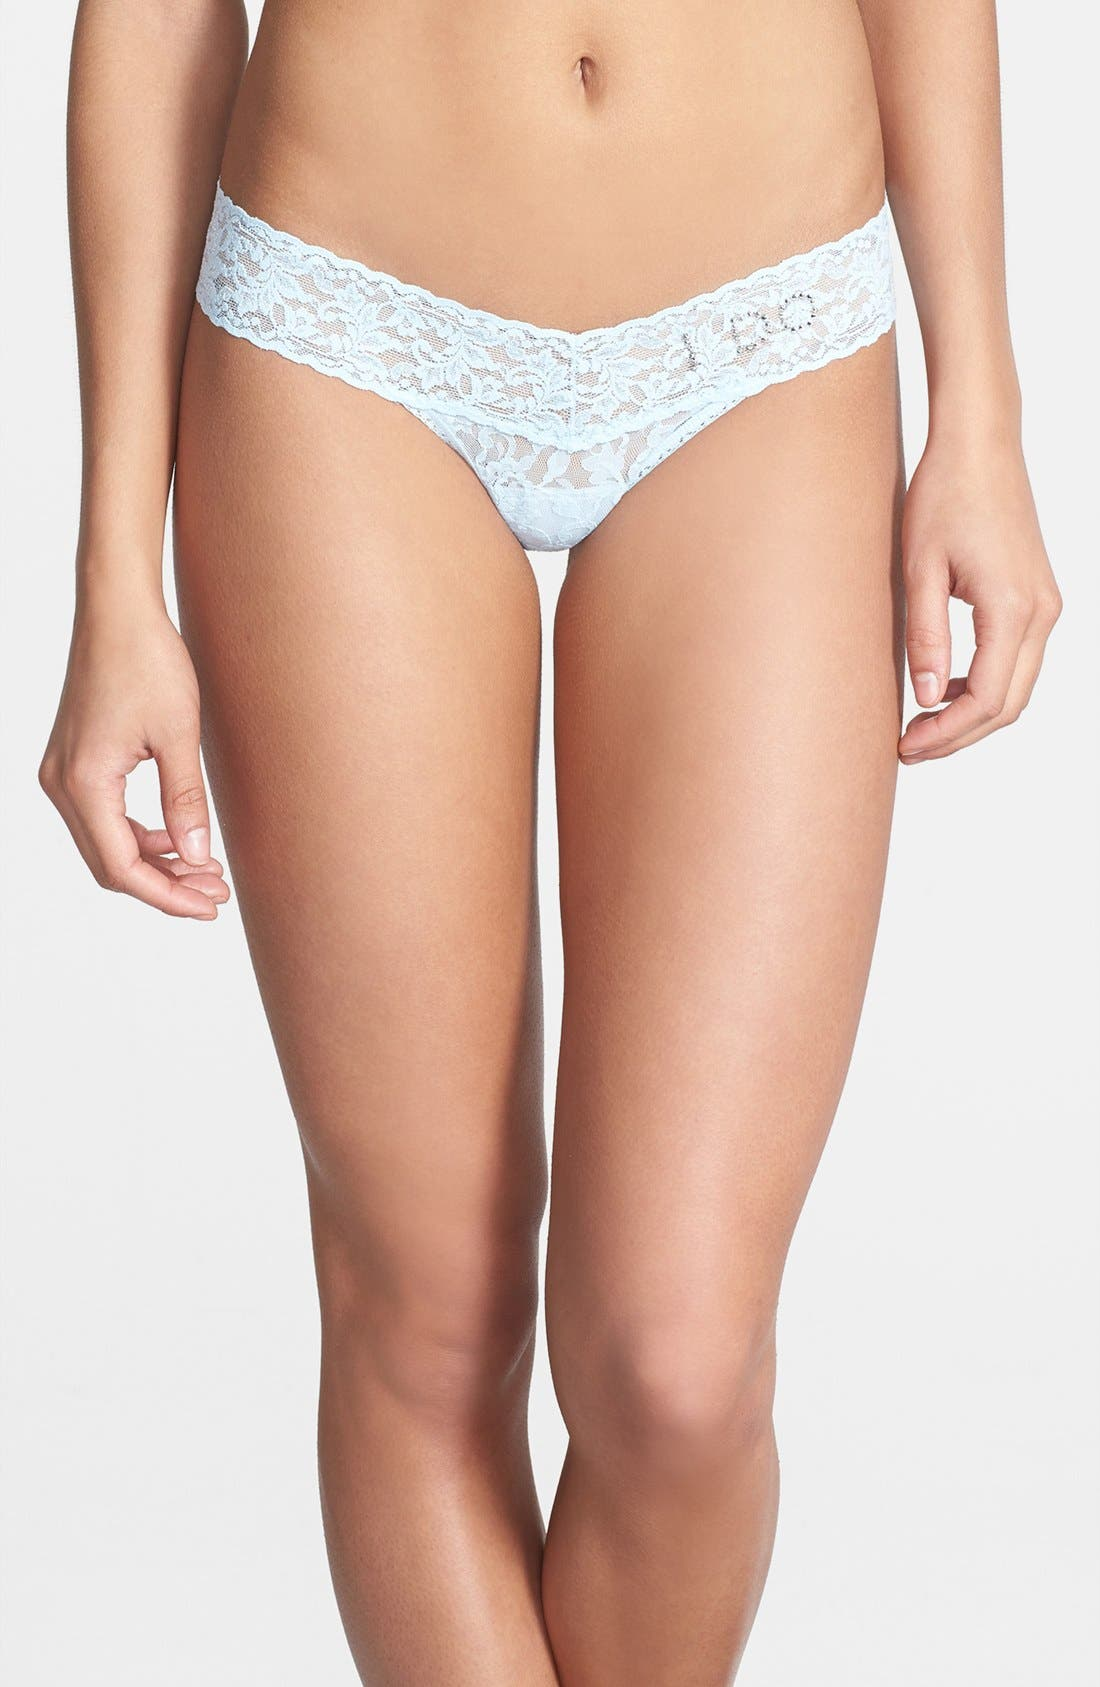 'I Do' Swarovski Crystal Low Rise Thong,                             Alternate thumbnail 2, color,                             Powder Blue